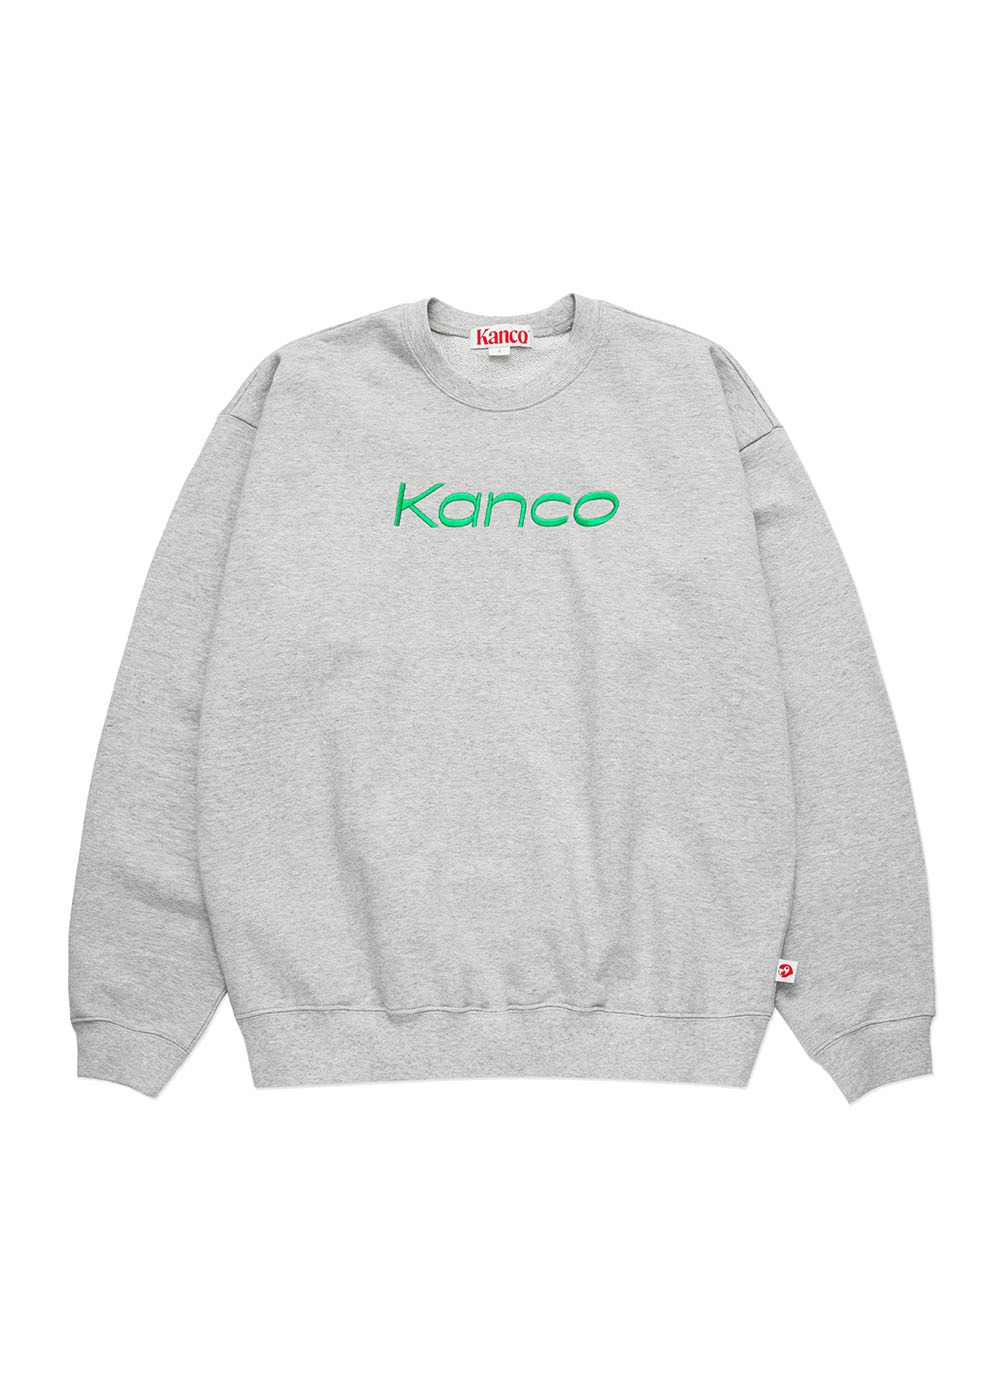 KANCO SERIF SWEATSHIRT heather gray